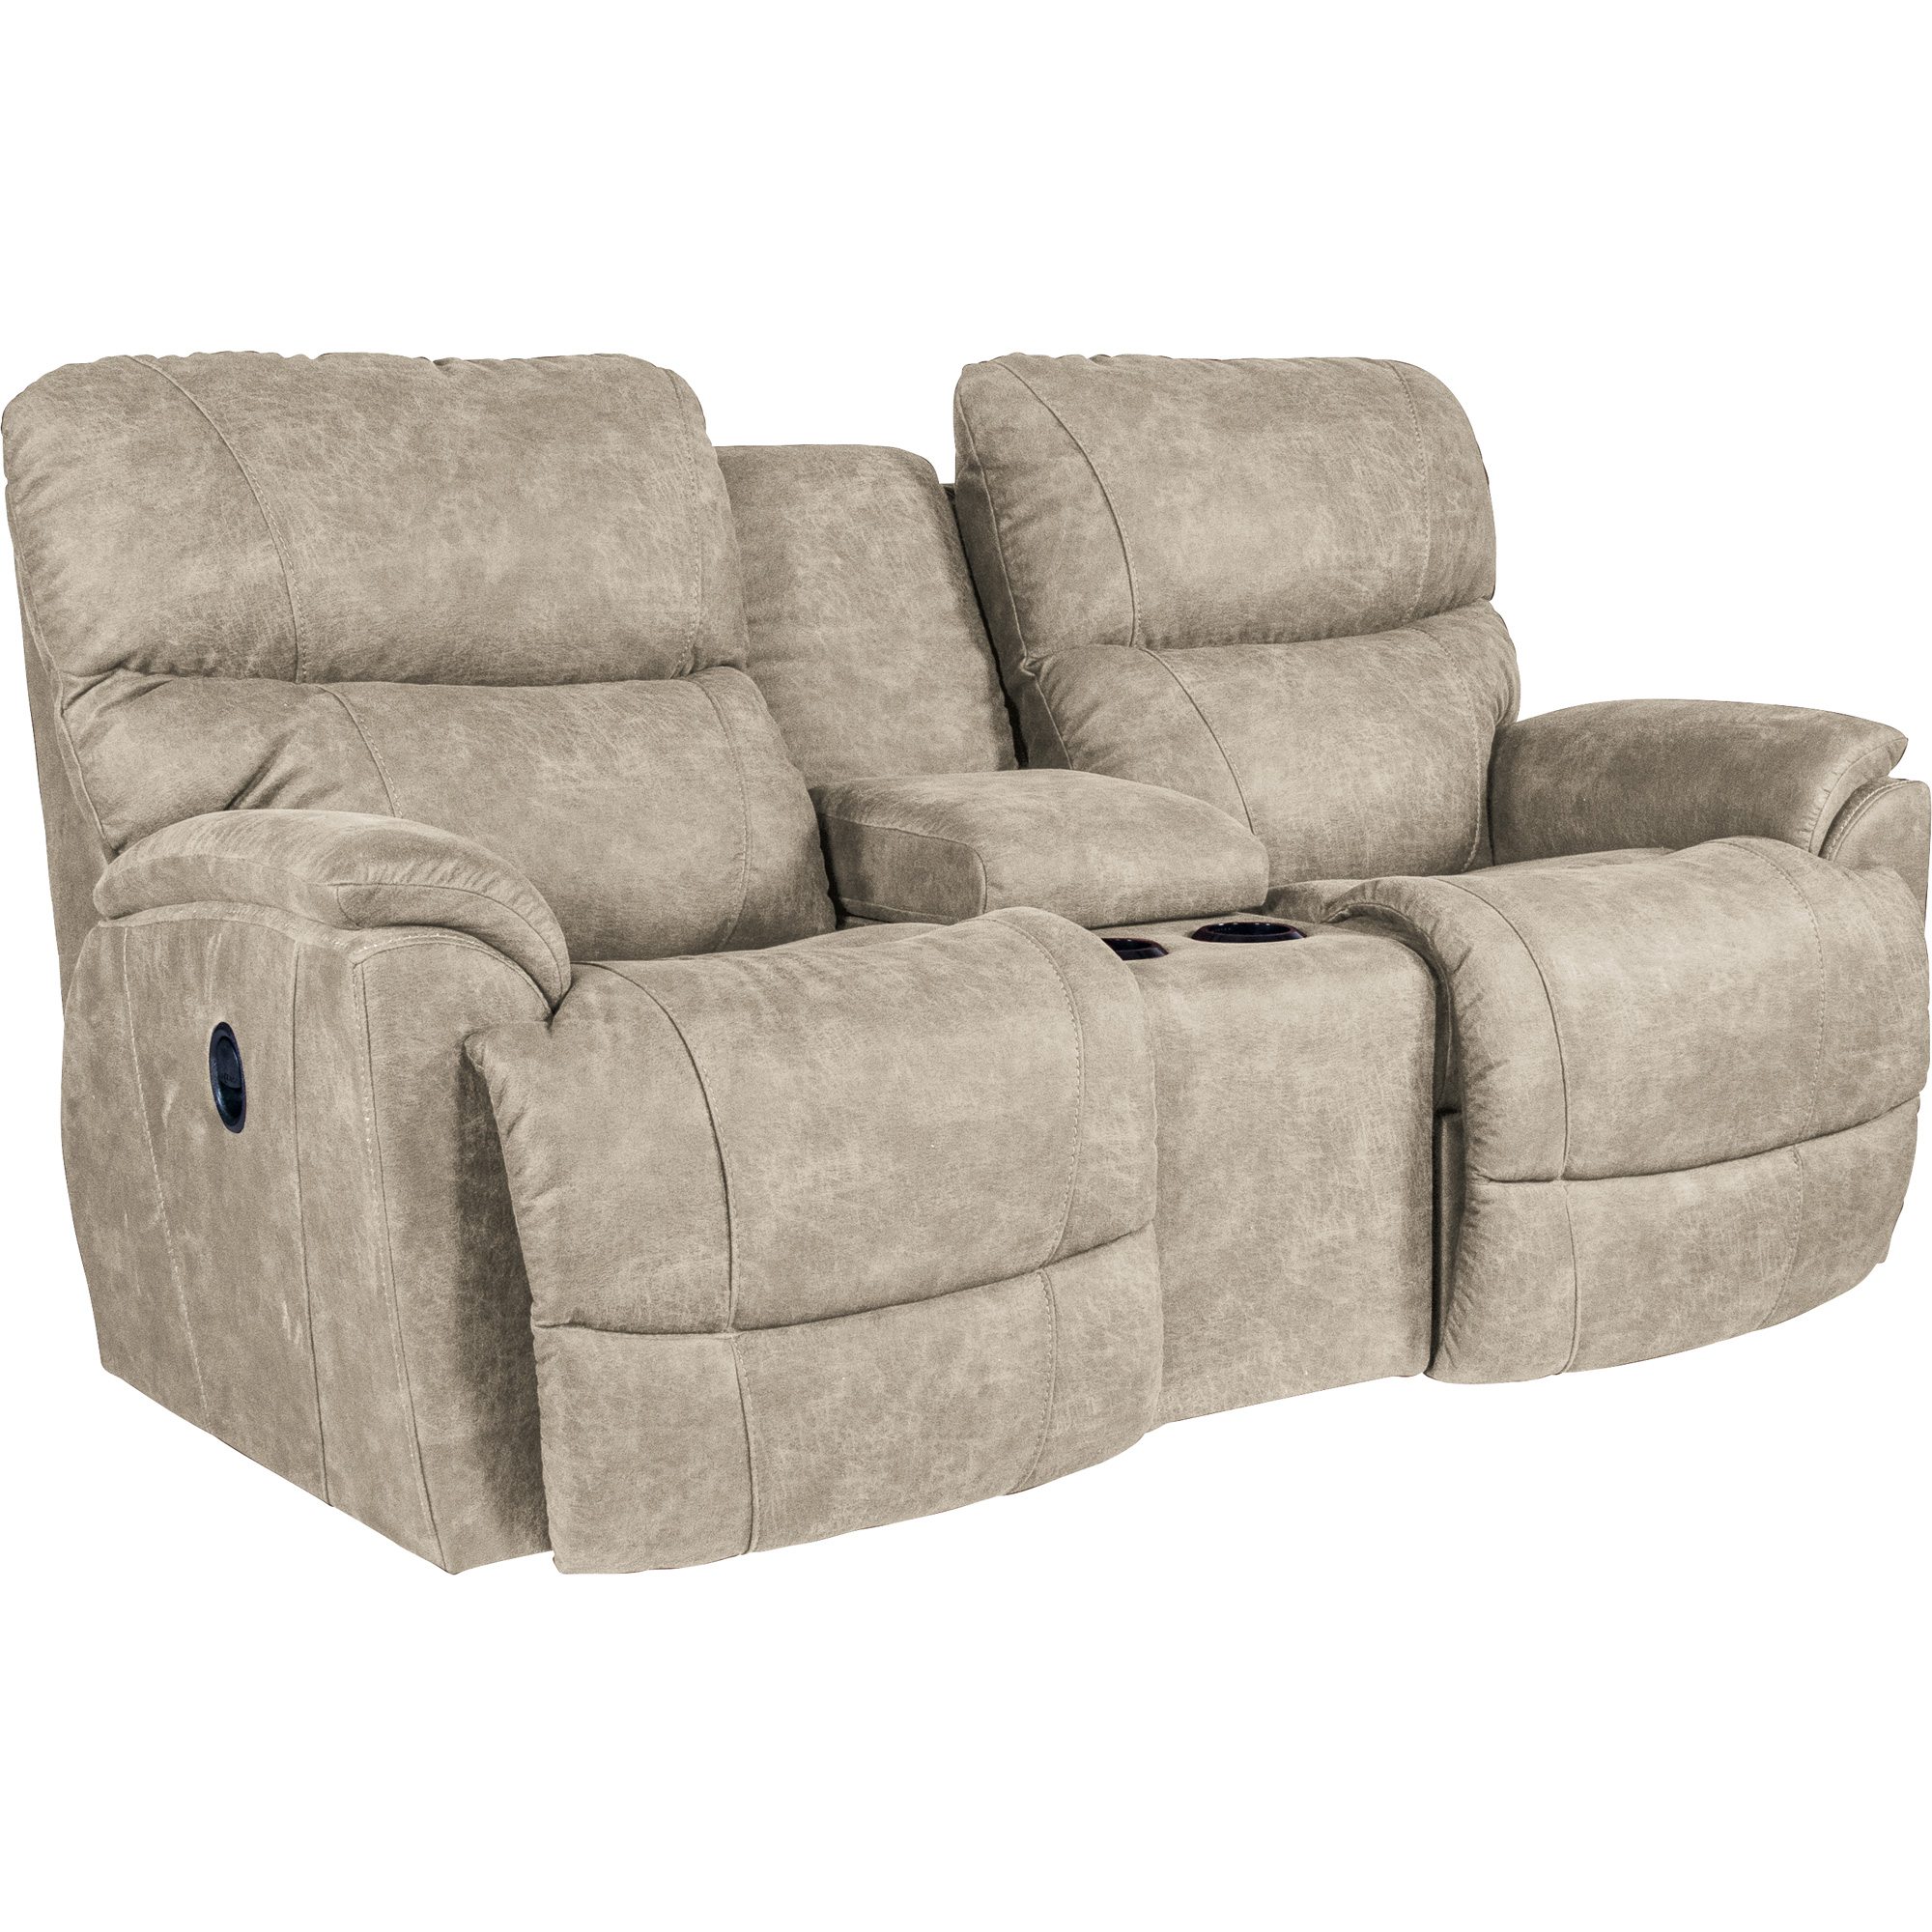 La-Z-Boy | Trouper Stucco Reclining Console Loveseat Sofa